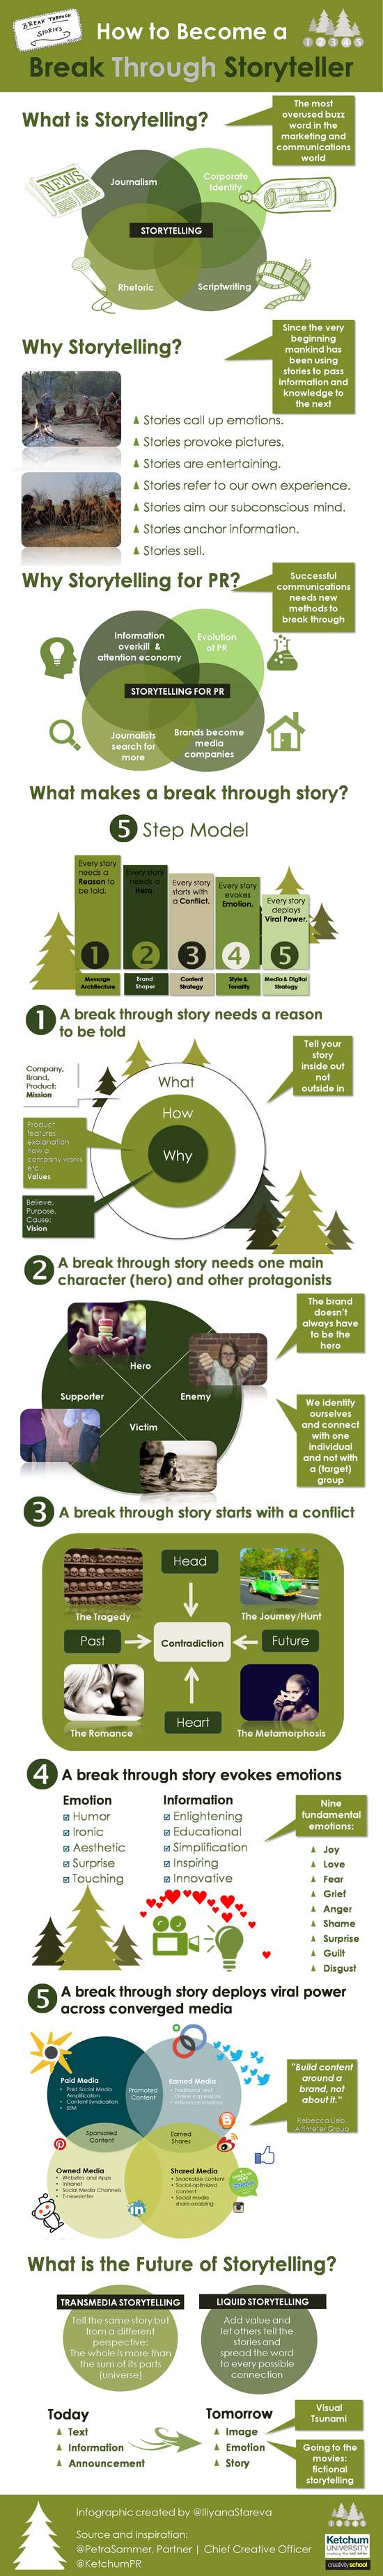 How-to-become-a-break-through-storyteller-infographic